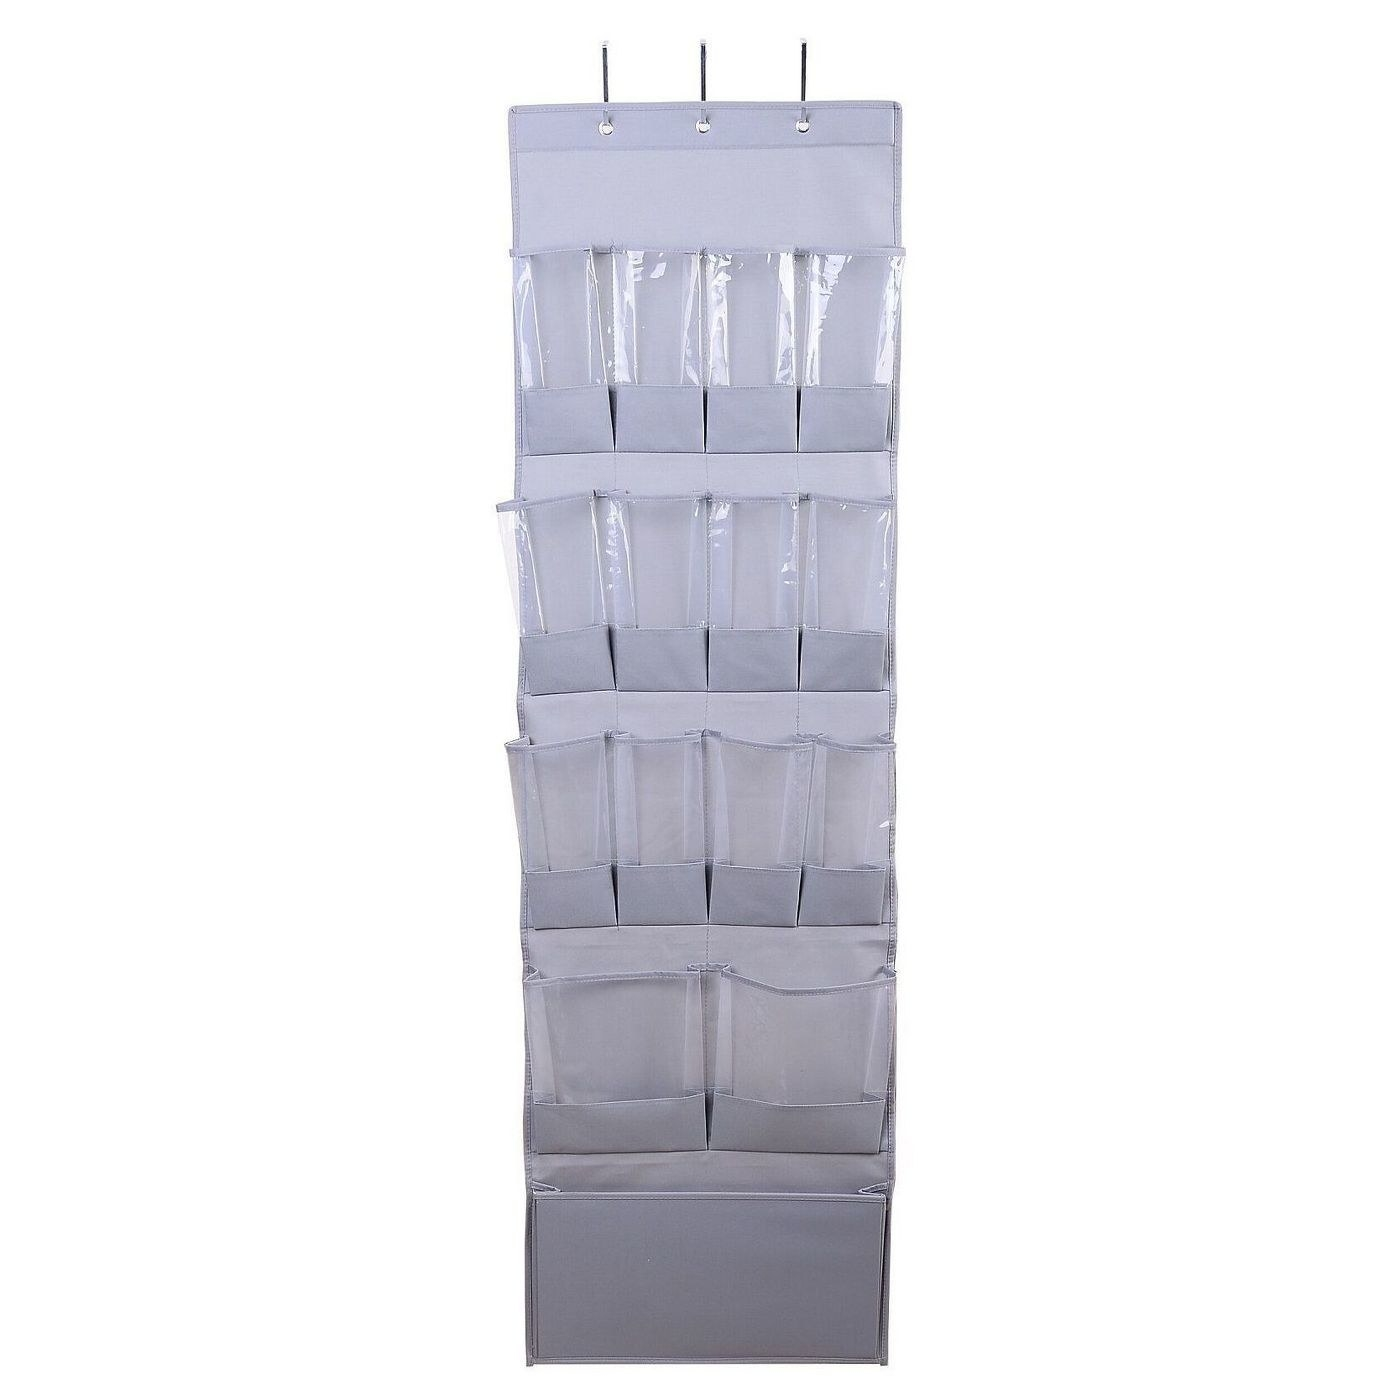 Gray shoe organizer